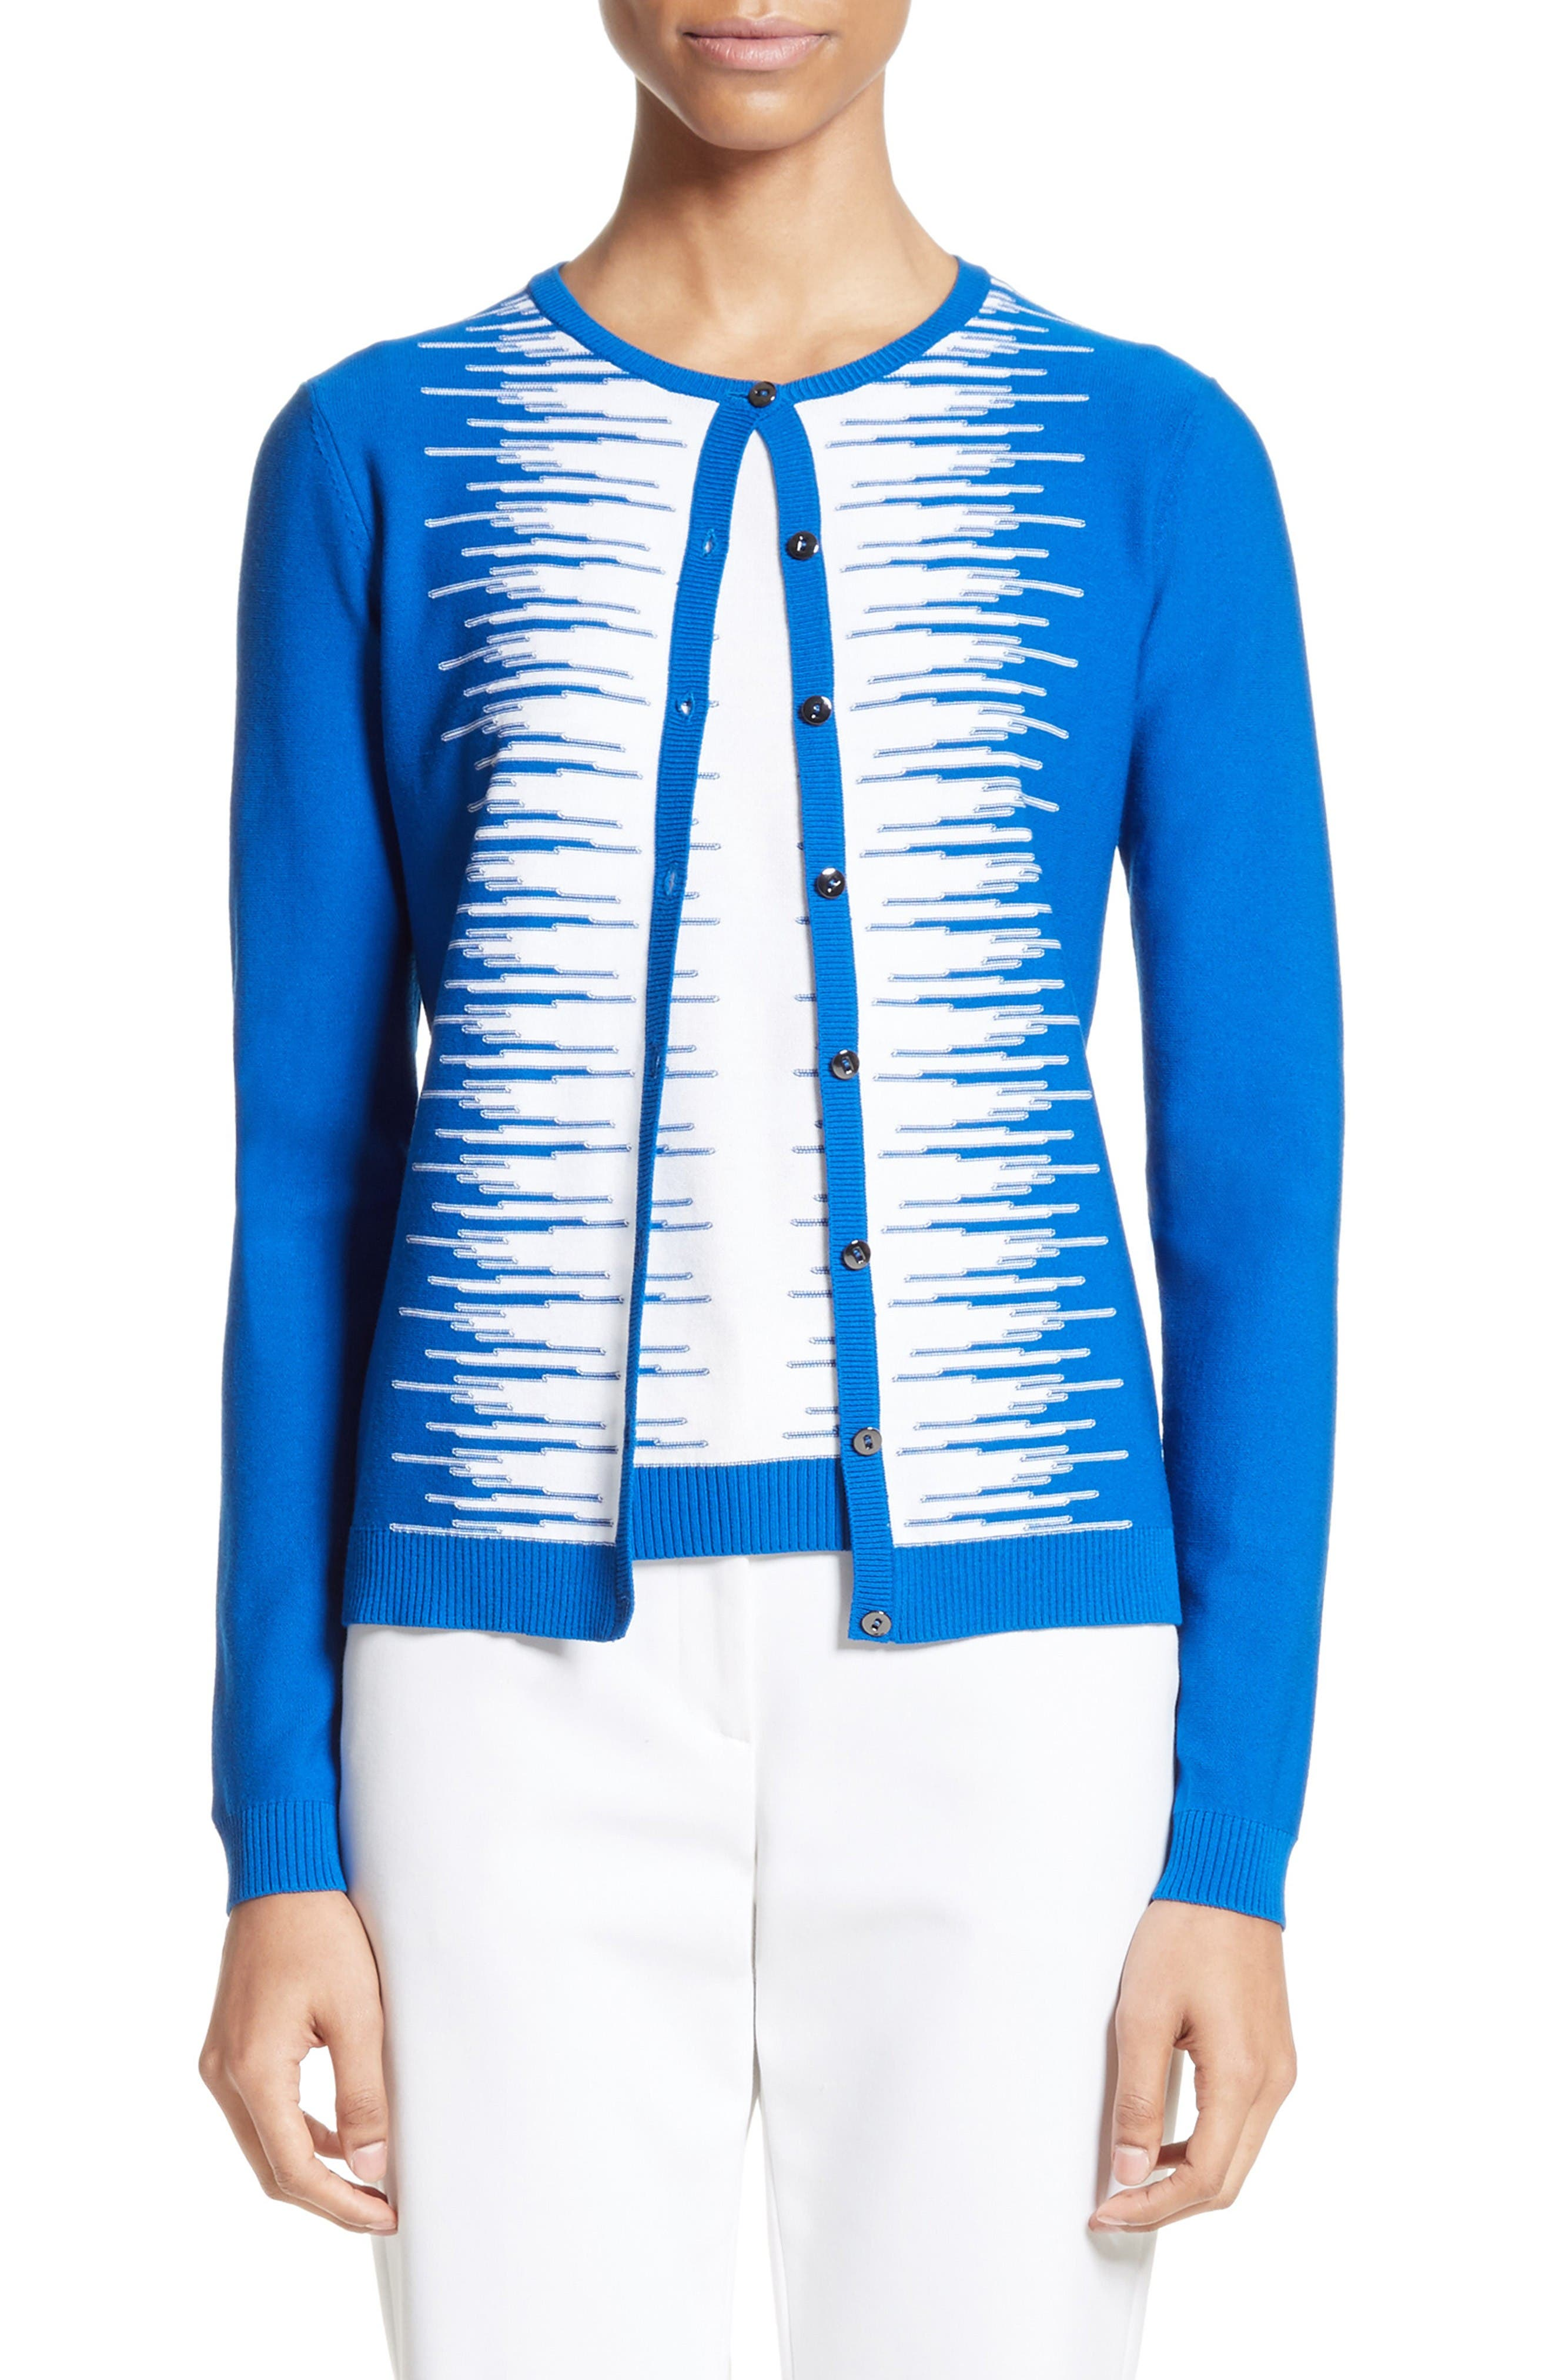 Main Image - St. John Collection Stripe Intarsia Knit Cardigan